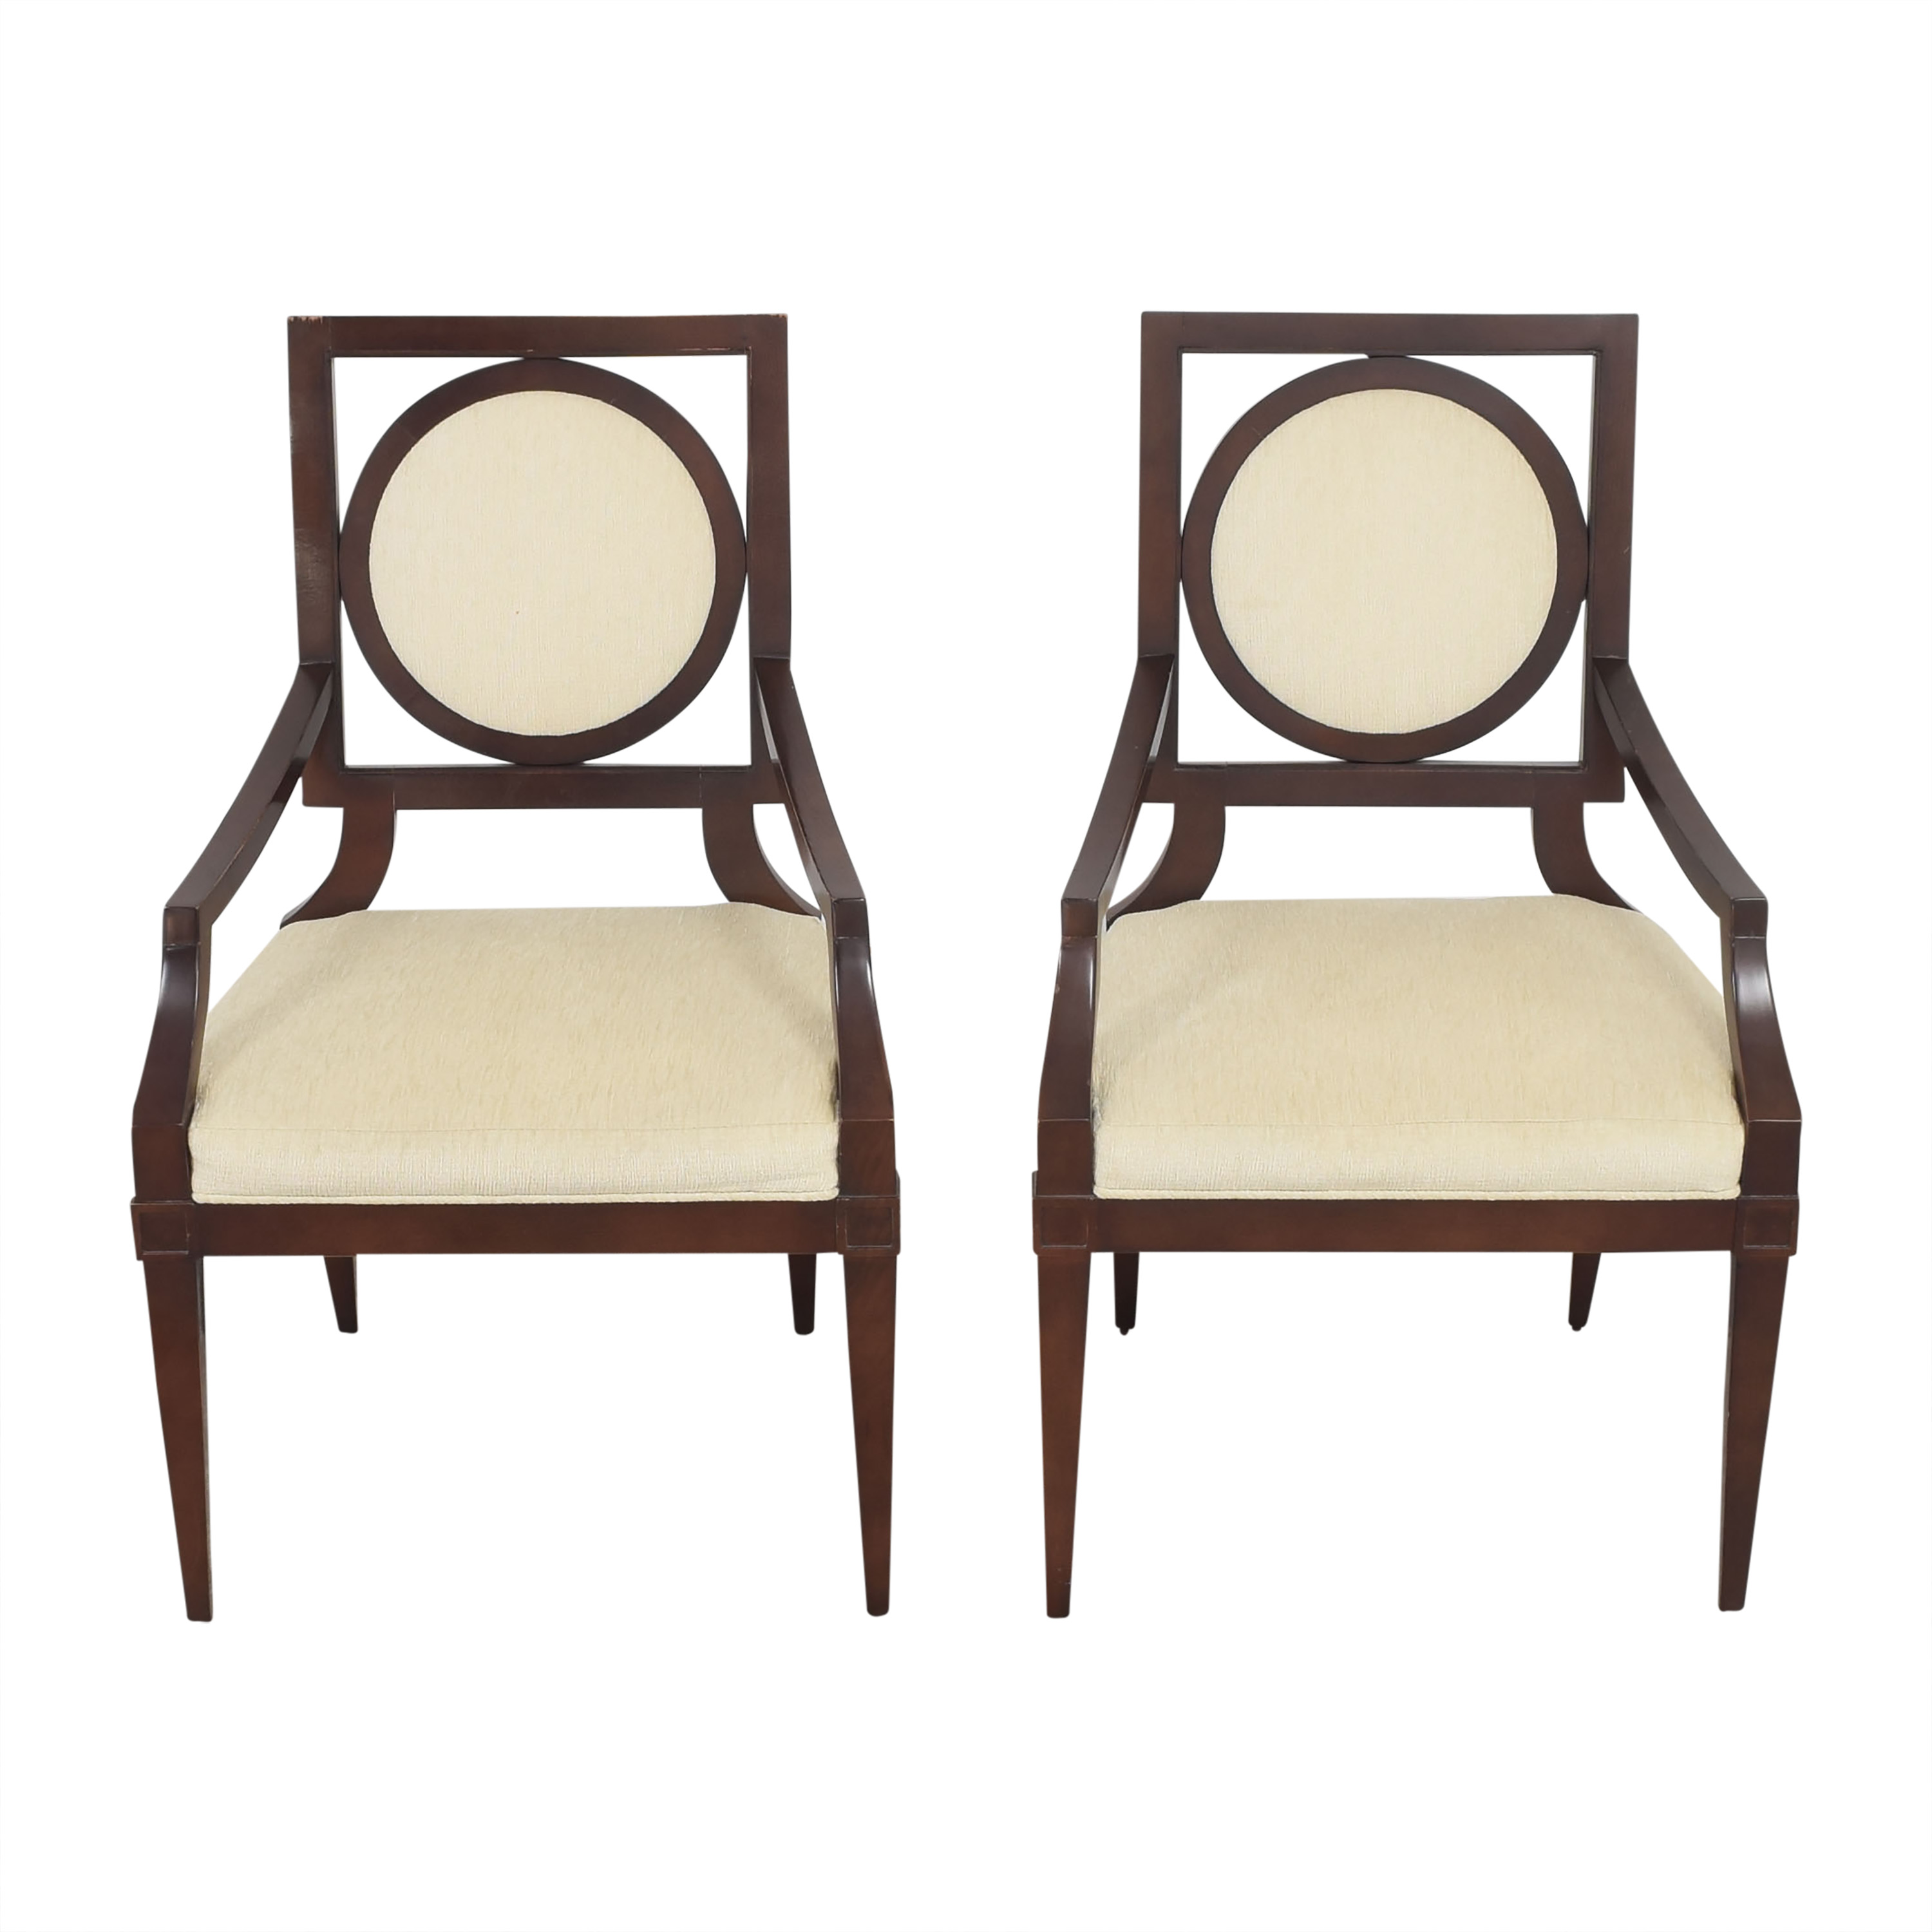 Baker Louis Dining Arm Chairs / Chairs